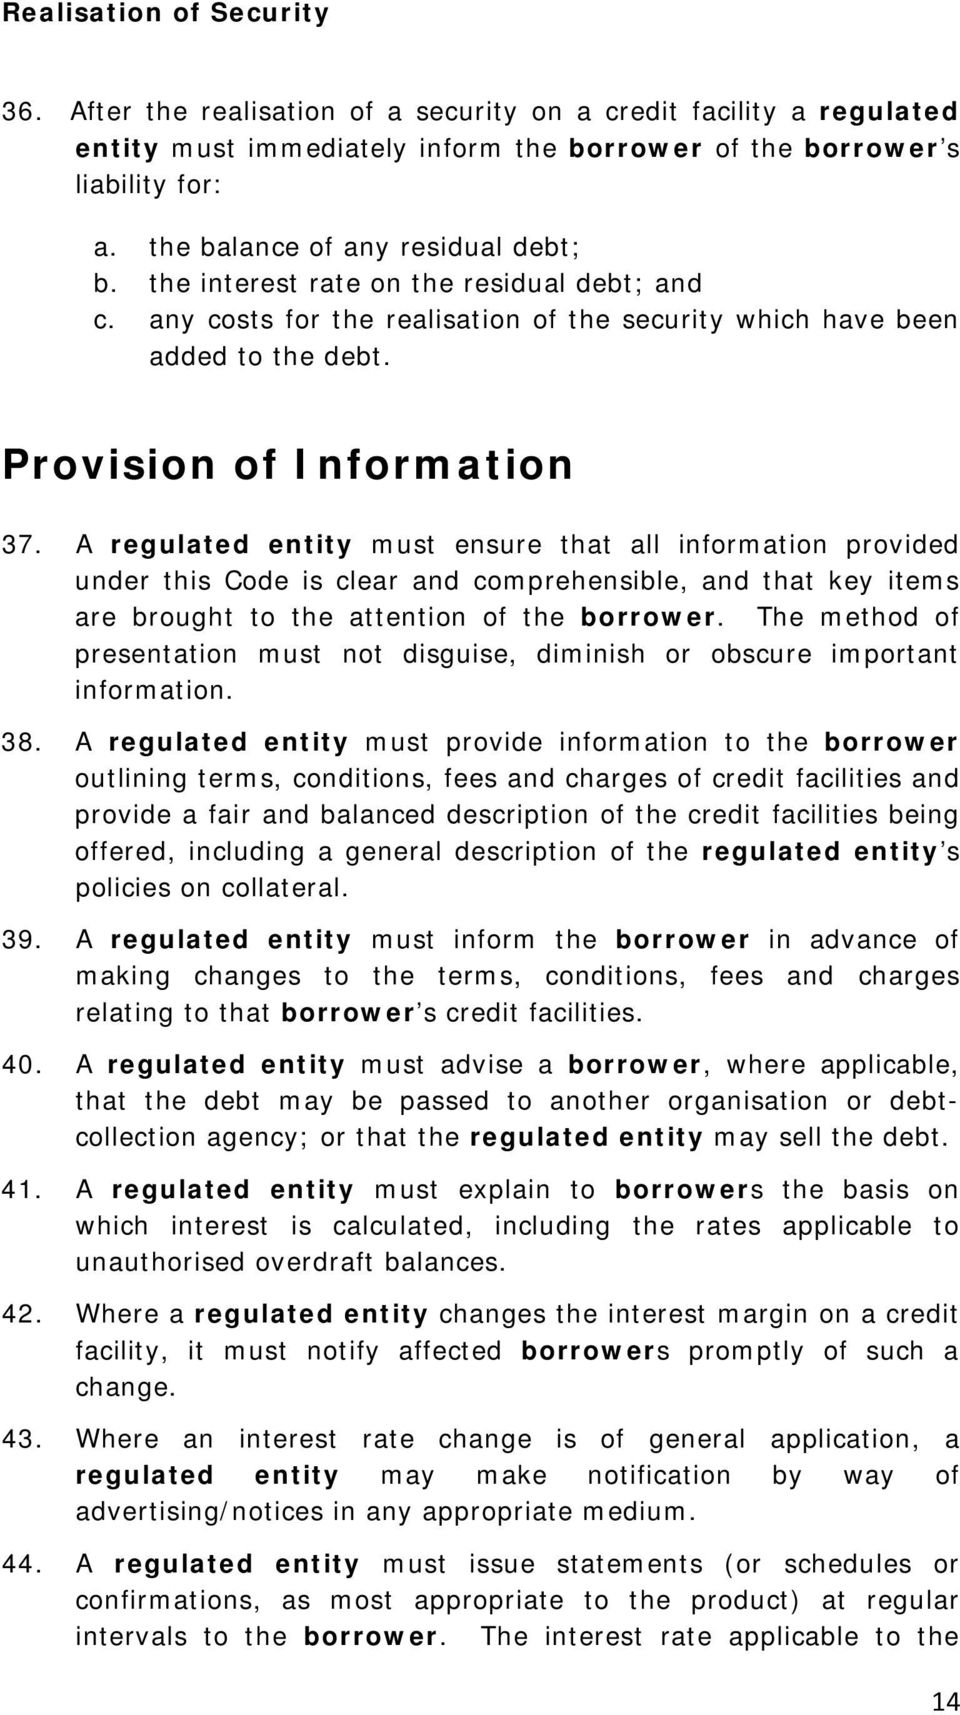 A regulated entity must ensure that all information provided under this Code is clear and comprehensible, and that key items are brought to the attention of the borrower.